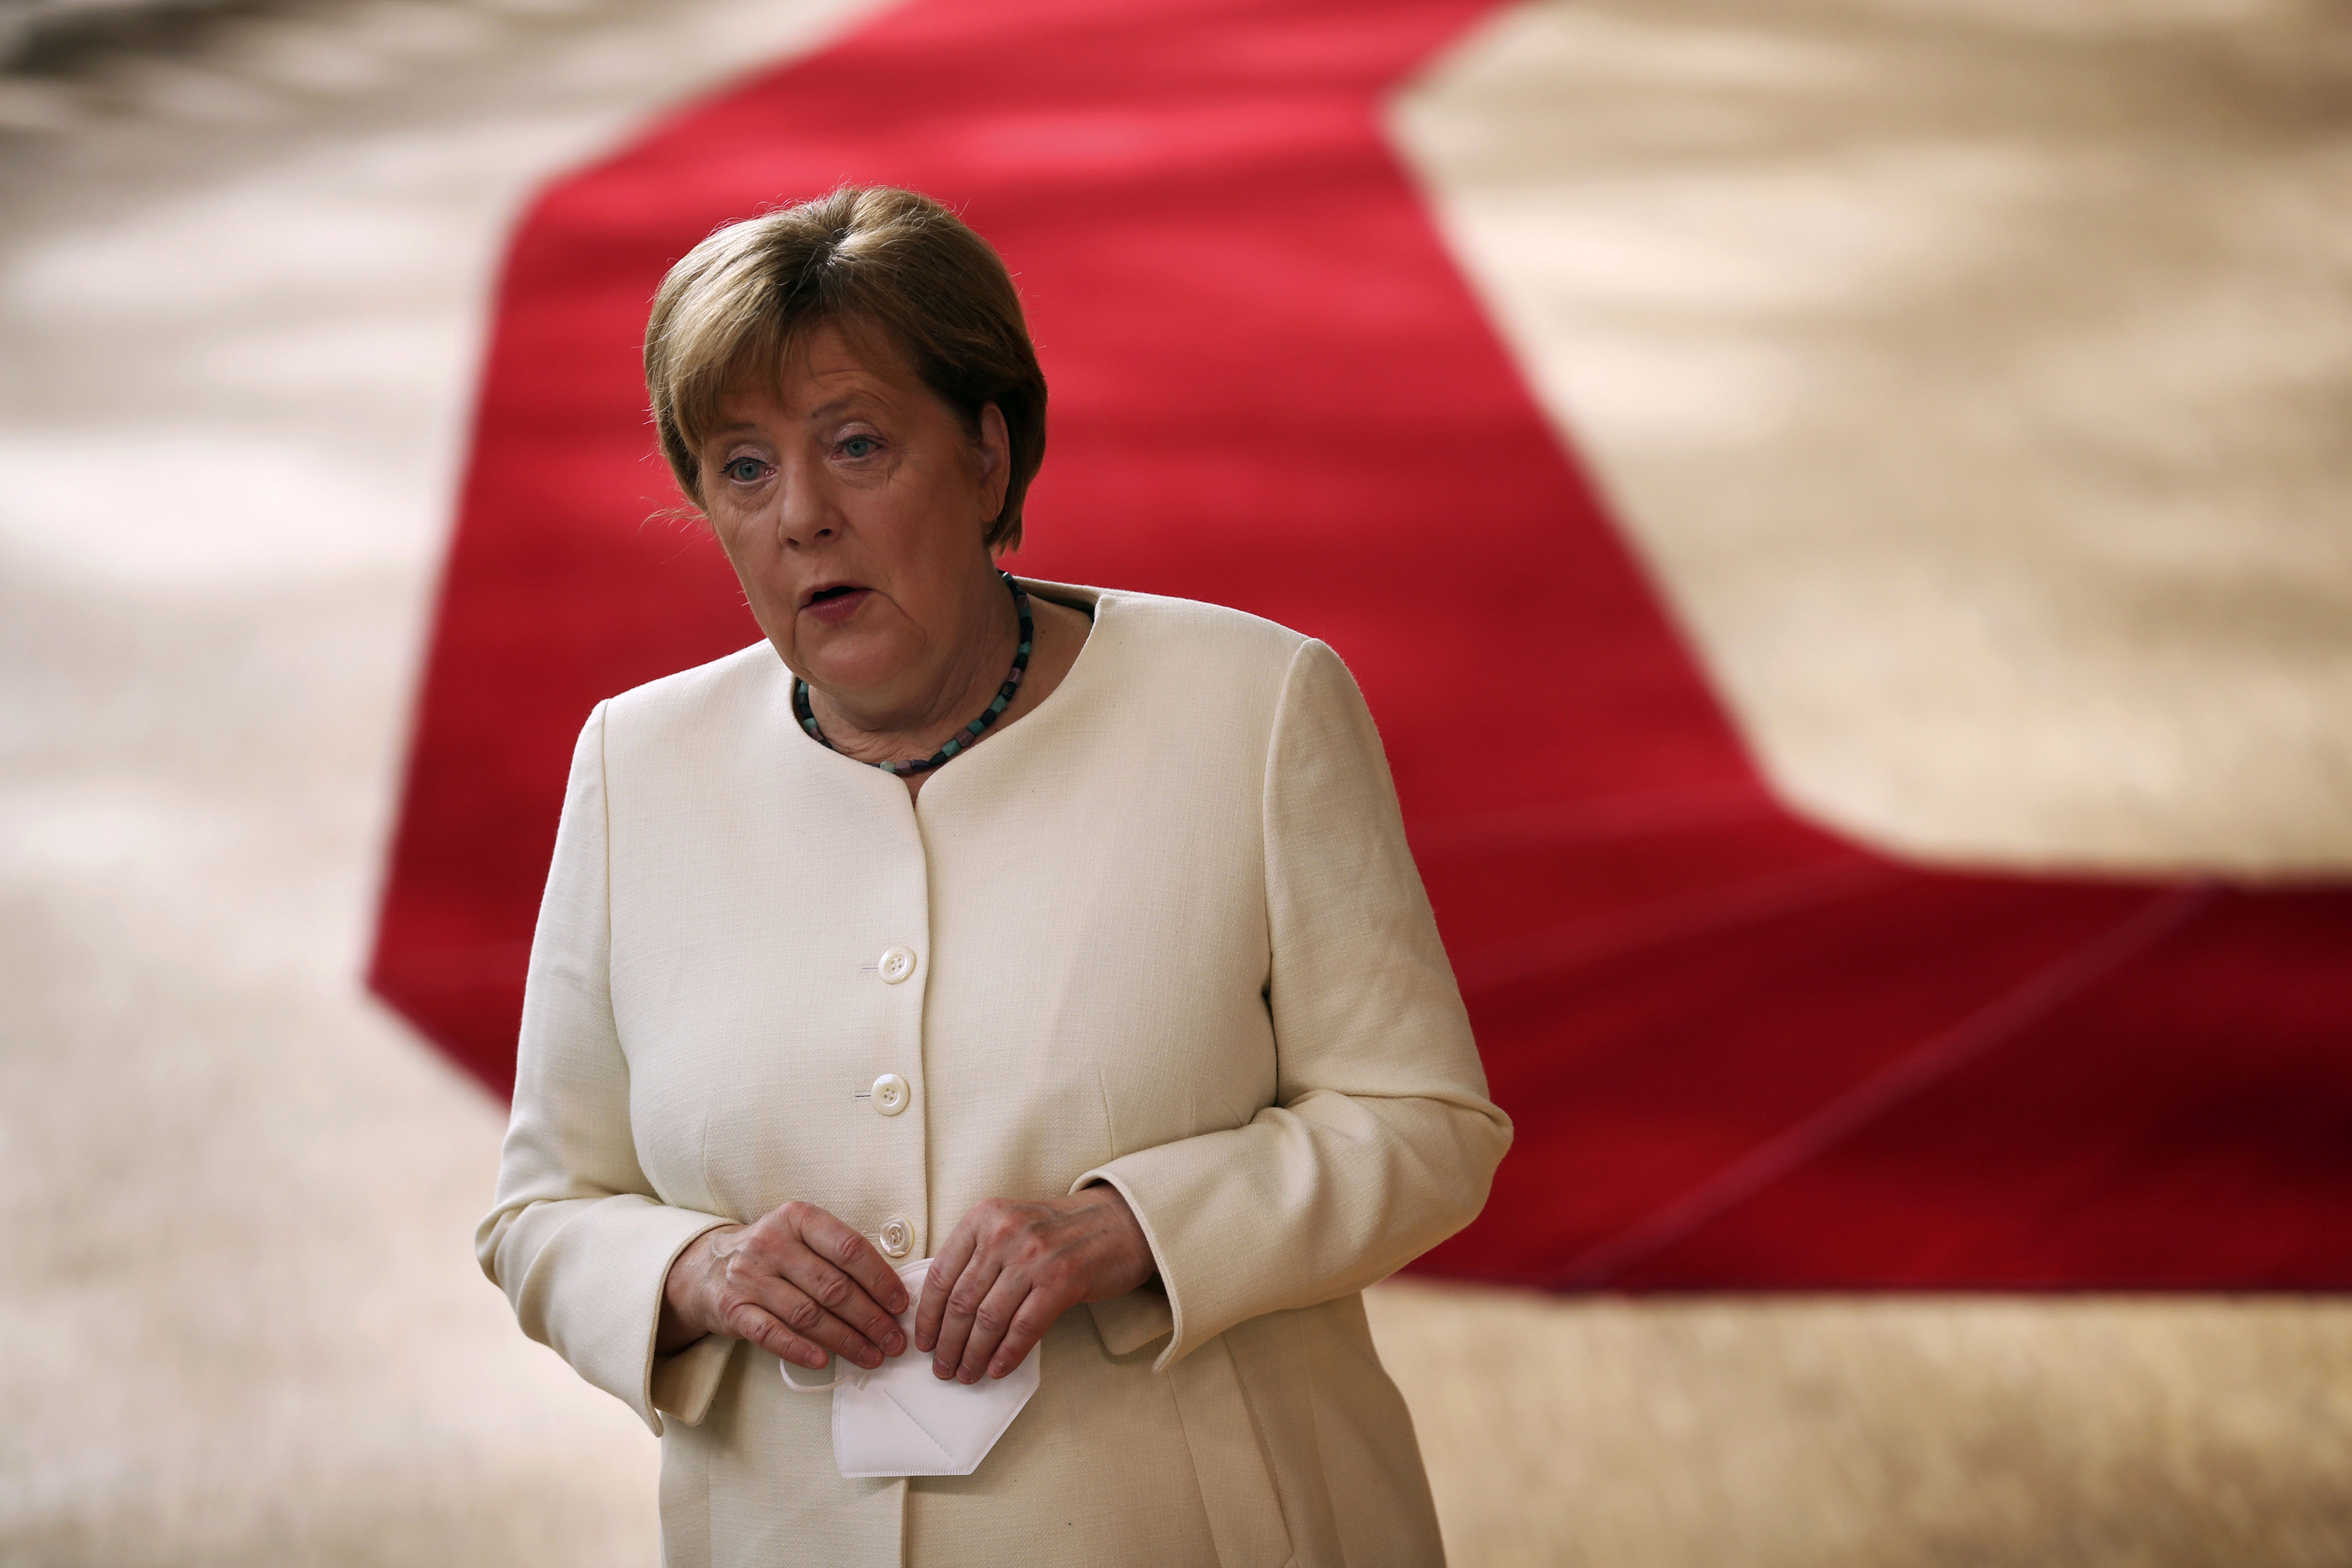 German Chancellor Angela Merkel makes a statement at the European Council building in Brussels, Belgium, on July 19.